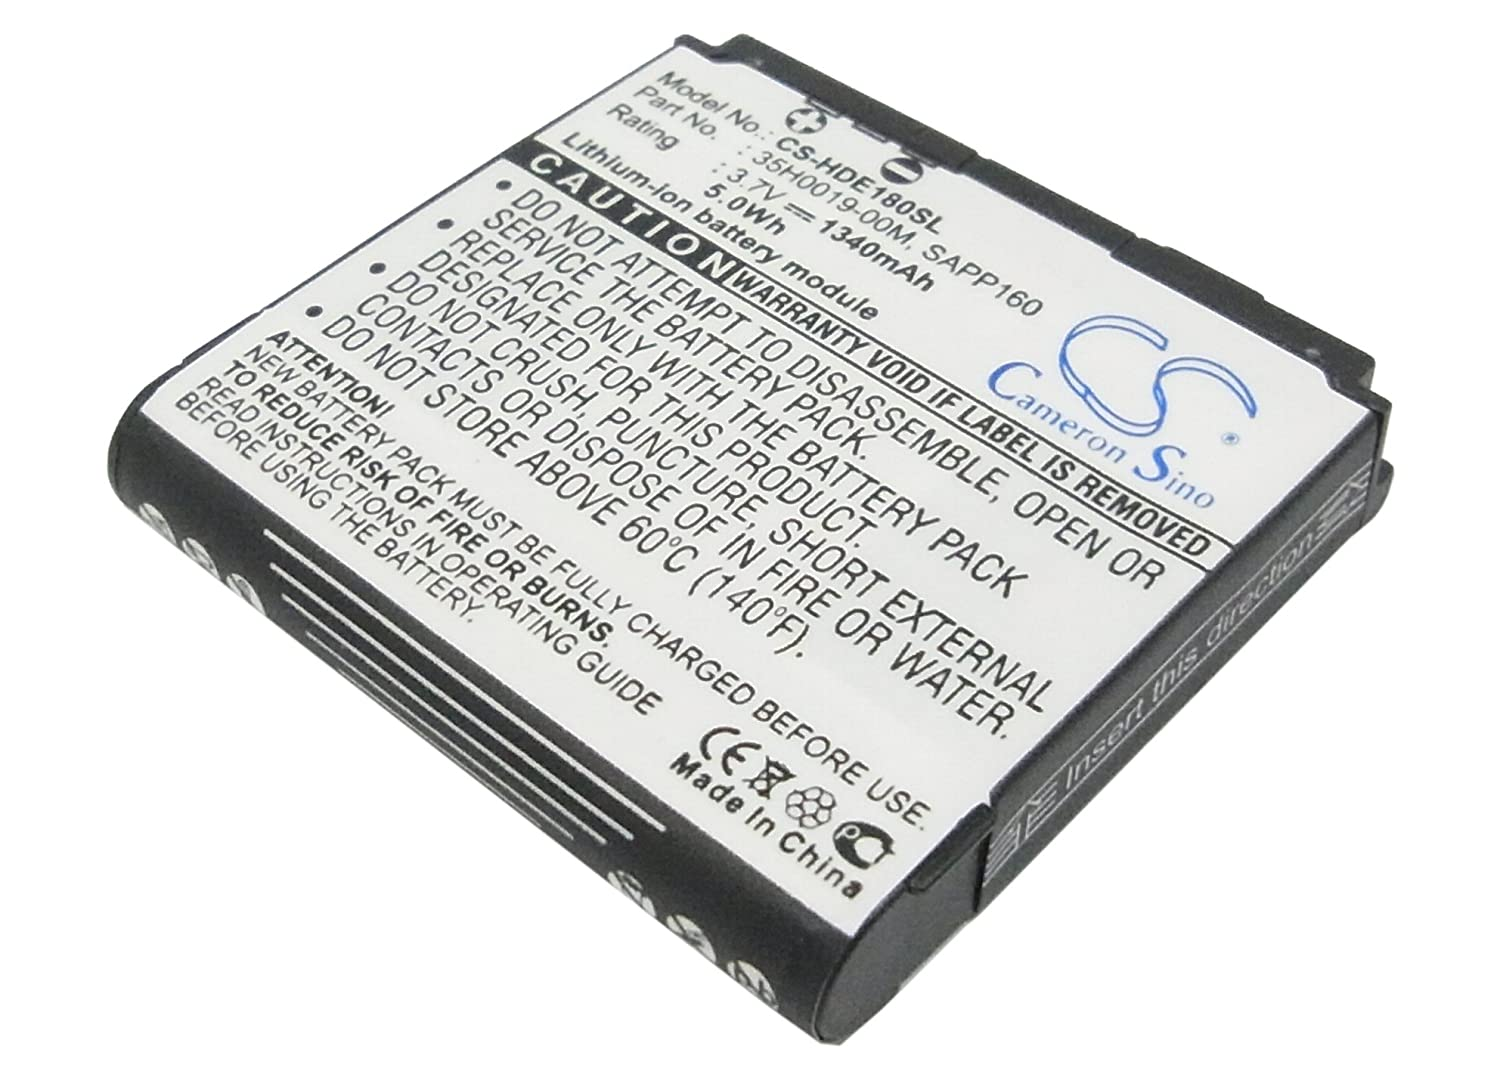 Cameron Sino 1340mAh Battery for T-Mobile Dash 3G, G1 Touch, MyTouch 3G